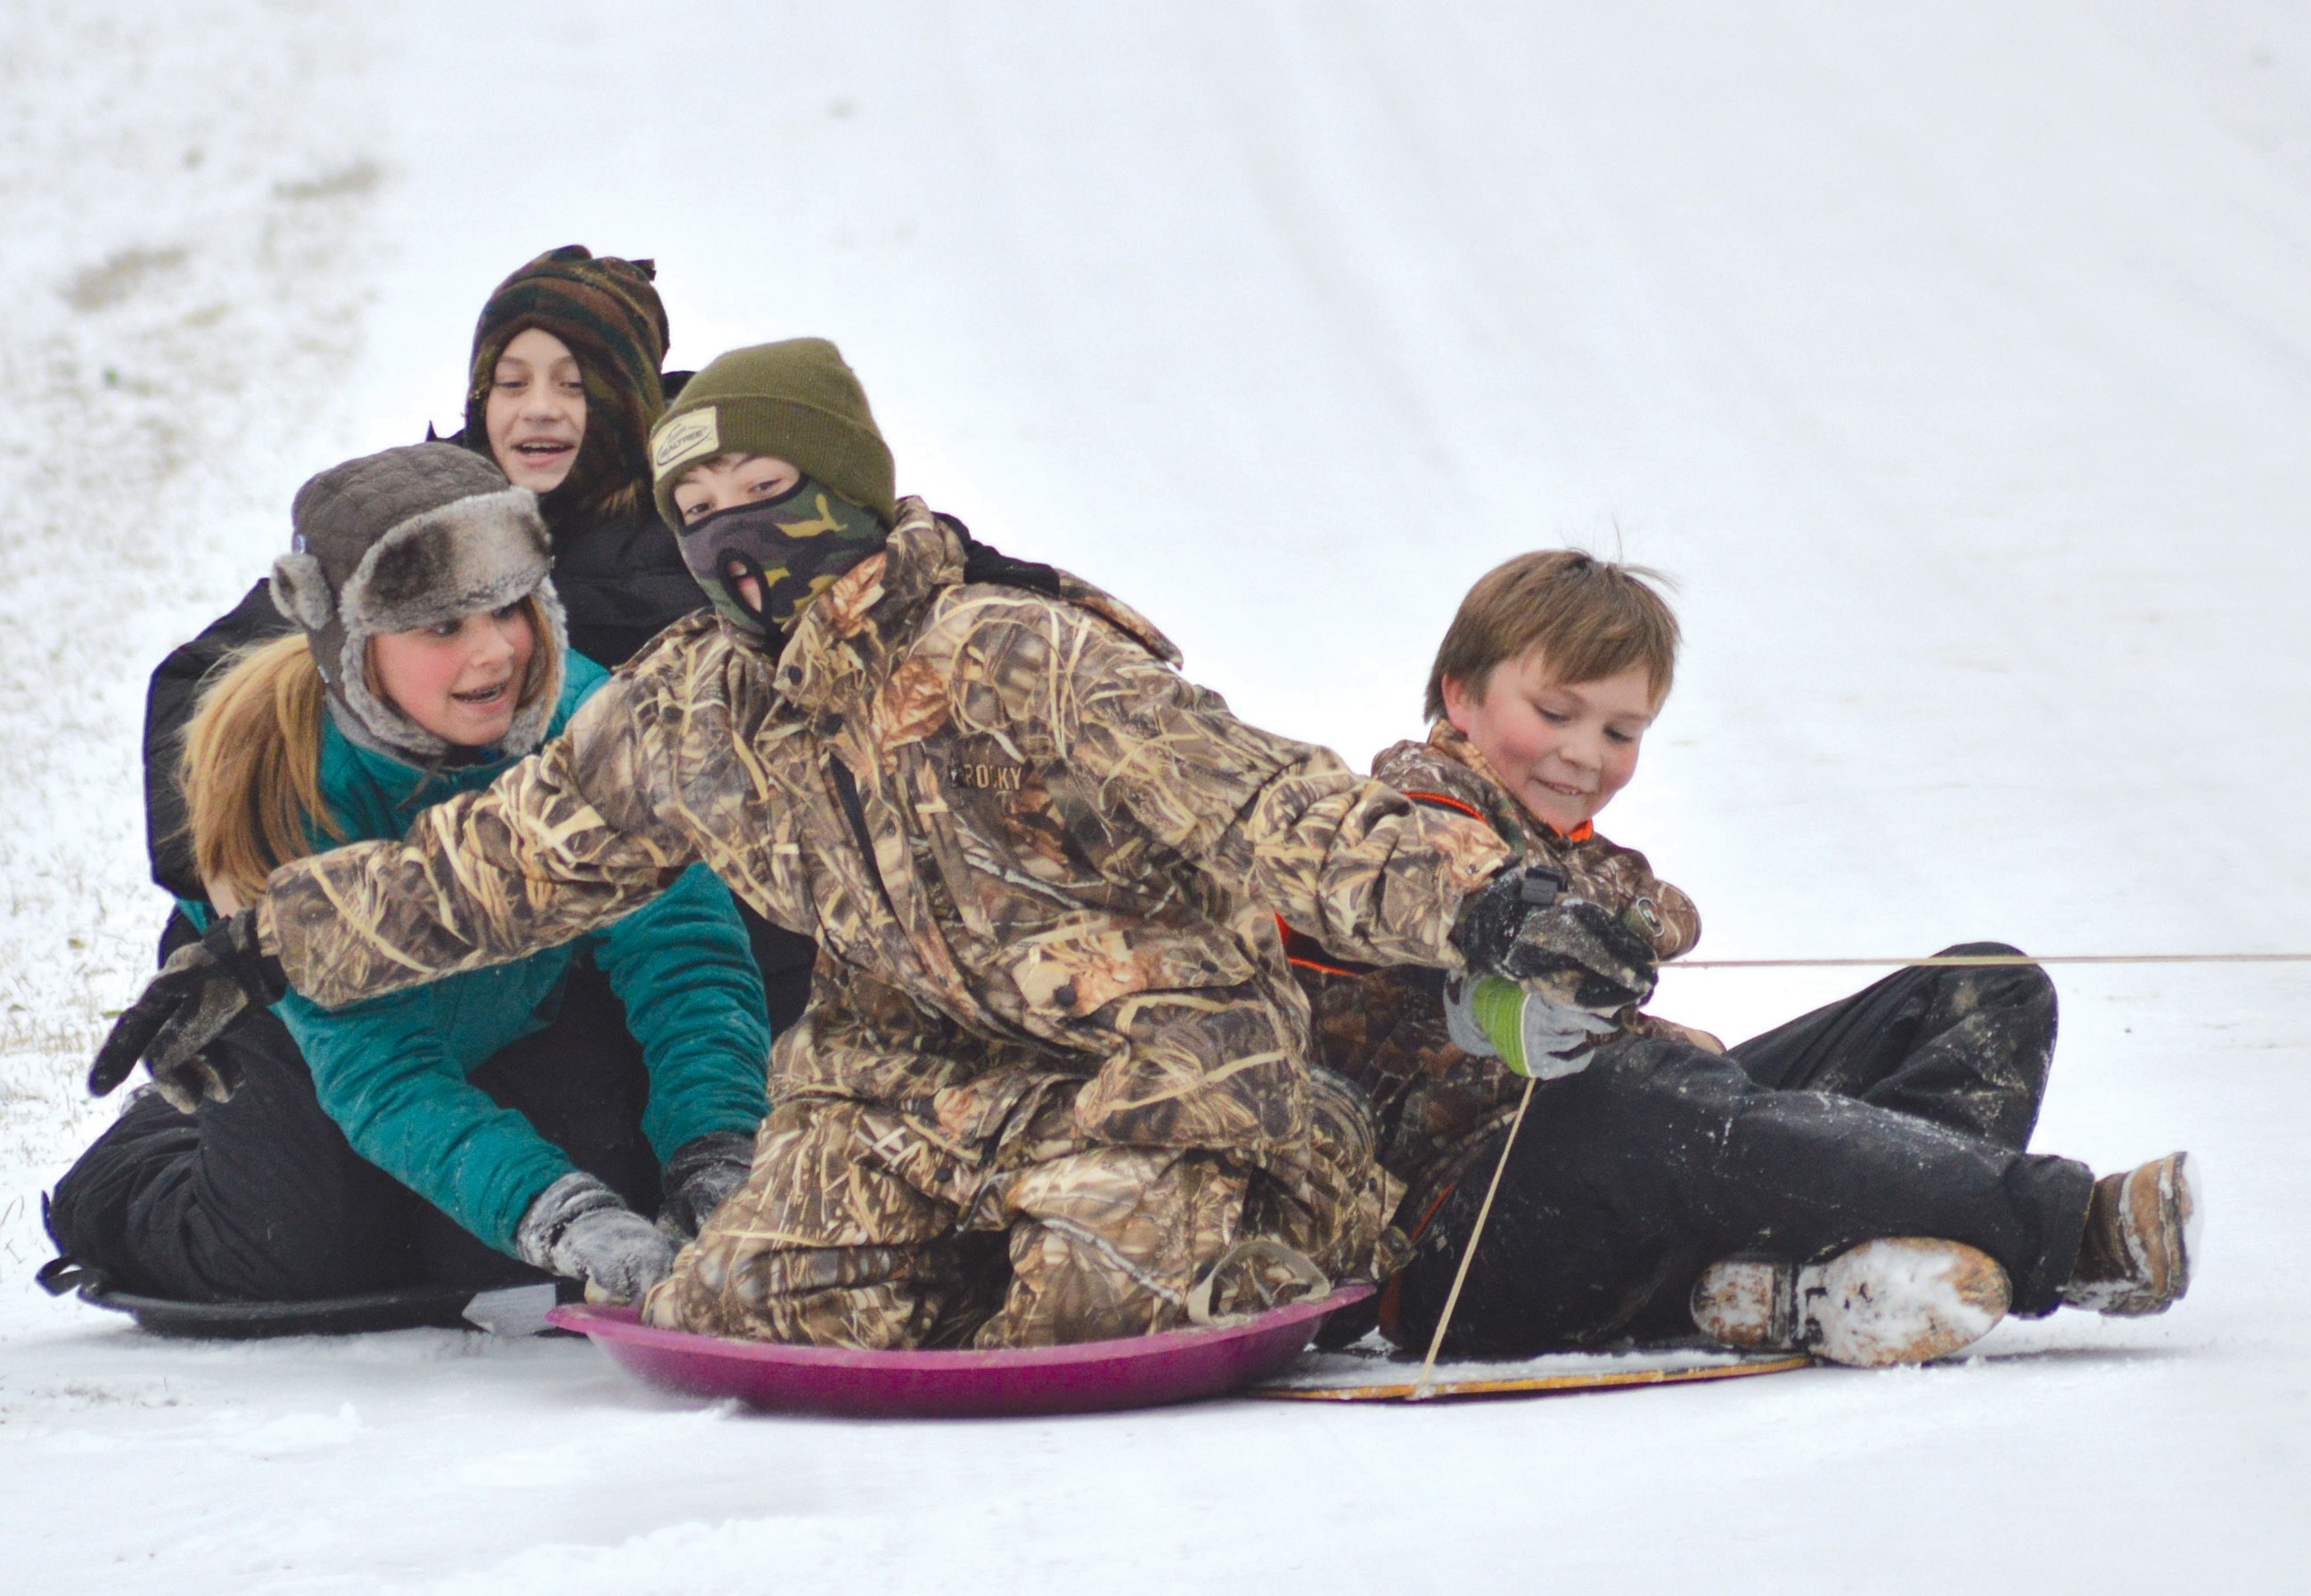 Susan Moore students Lyndsey Nolen, 13, Claire Perkins, 10, Drew Williams, 12, and Tanner Nolen, 11, enjoyed an afternoon of sledding last Tuesday. – Nicole Singleton